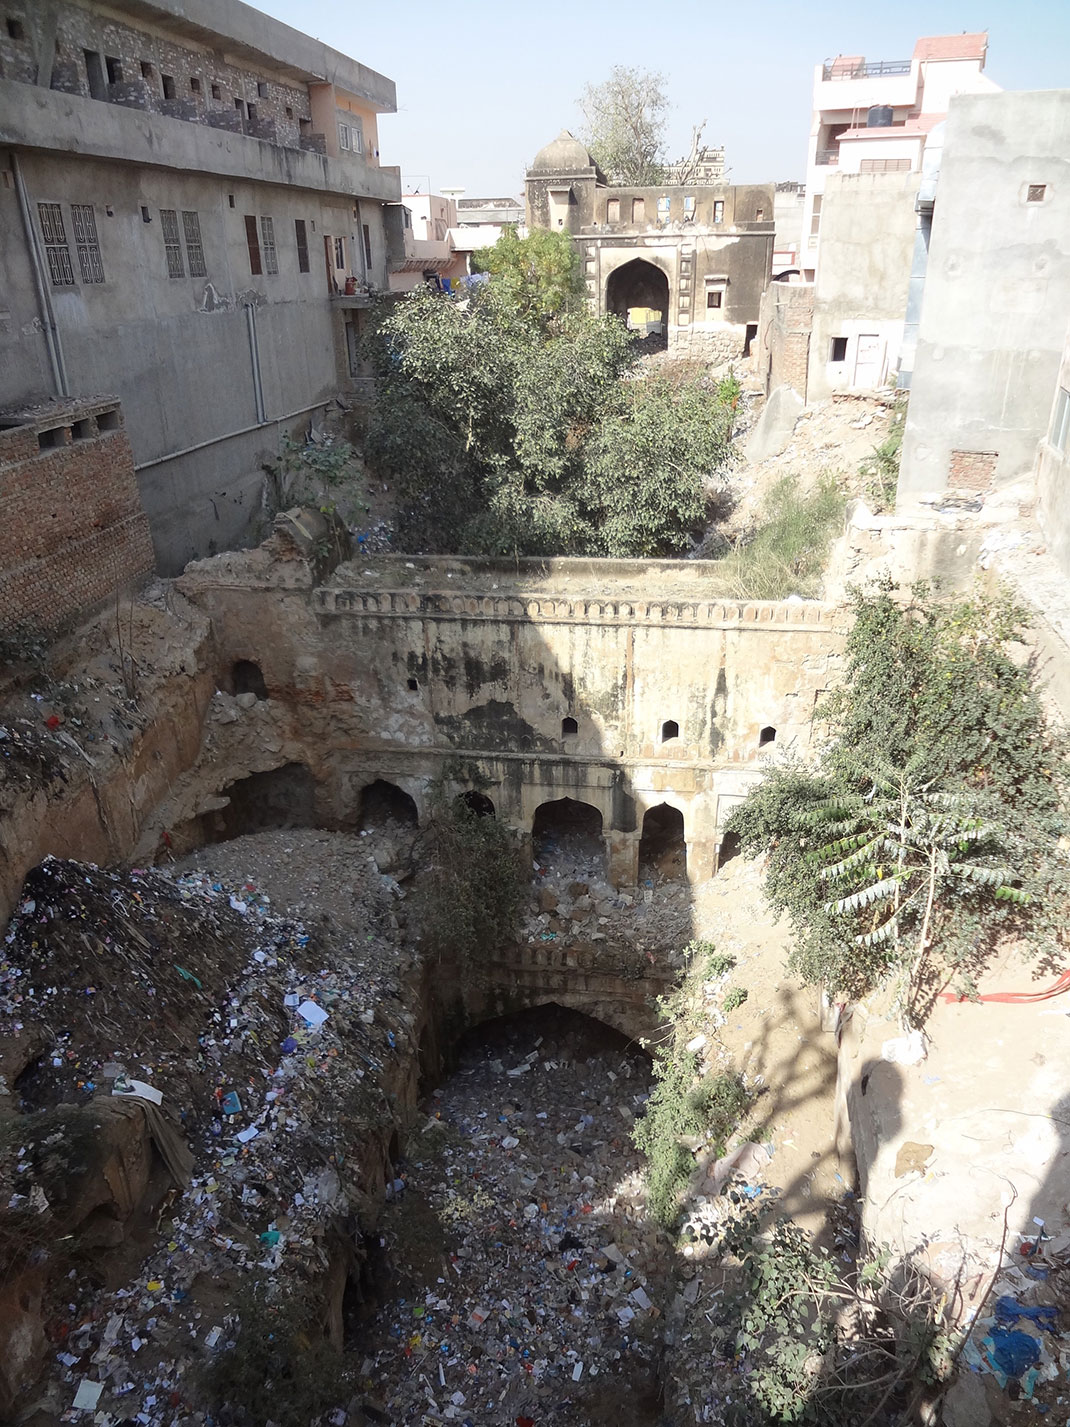 Admire These 2000 Year Old Somptous Buildings In India Destined To Disappear-36